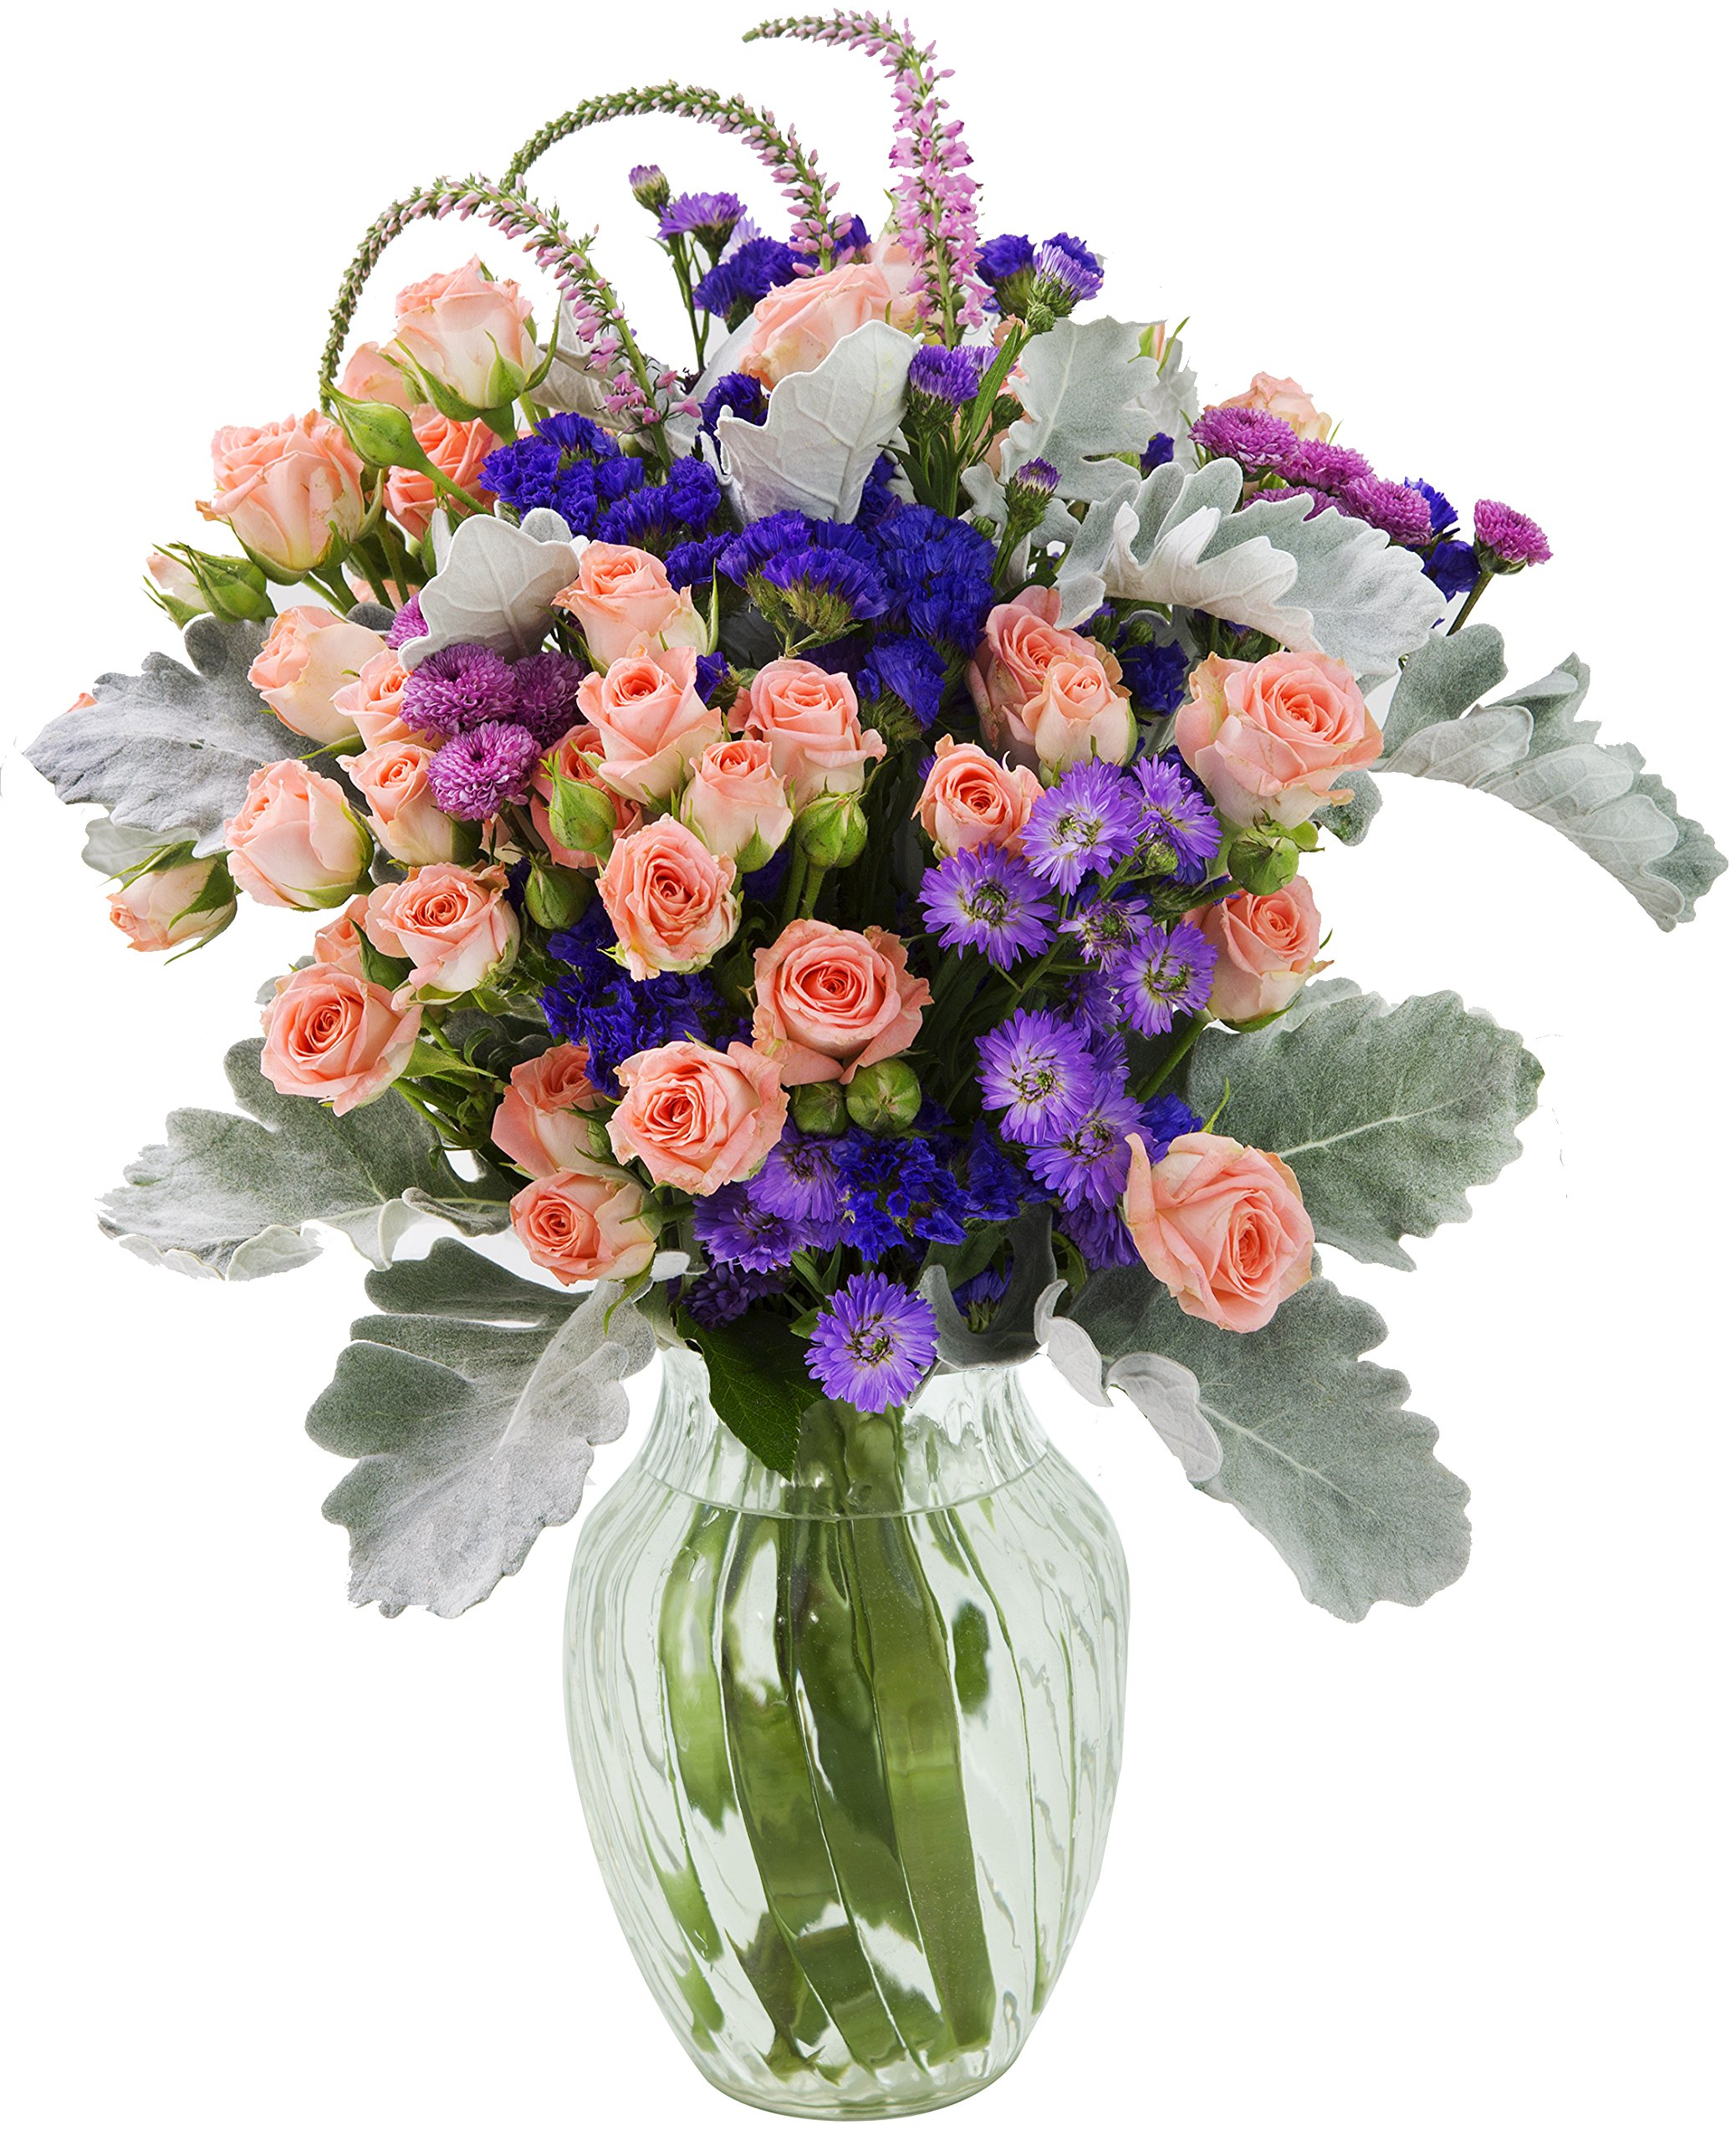 Frosted Grace Mixed Bouquet with Free Vase Included